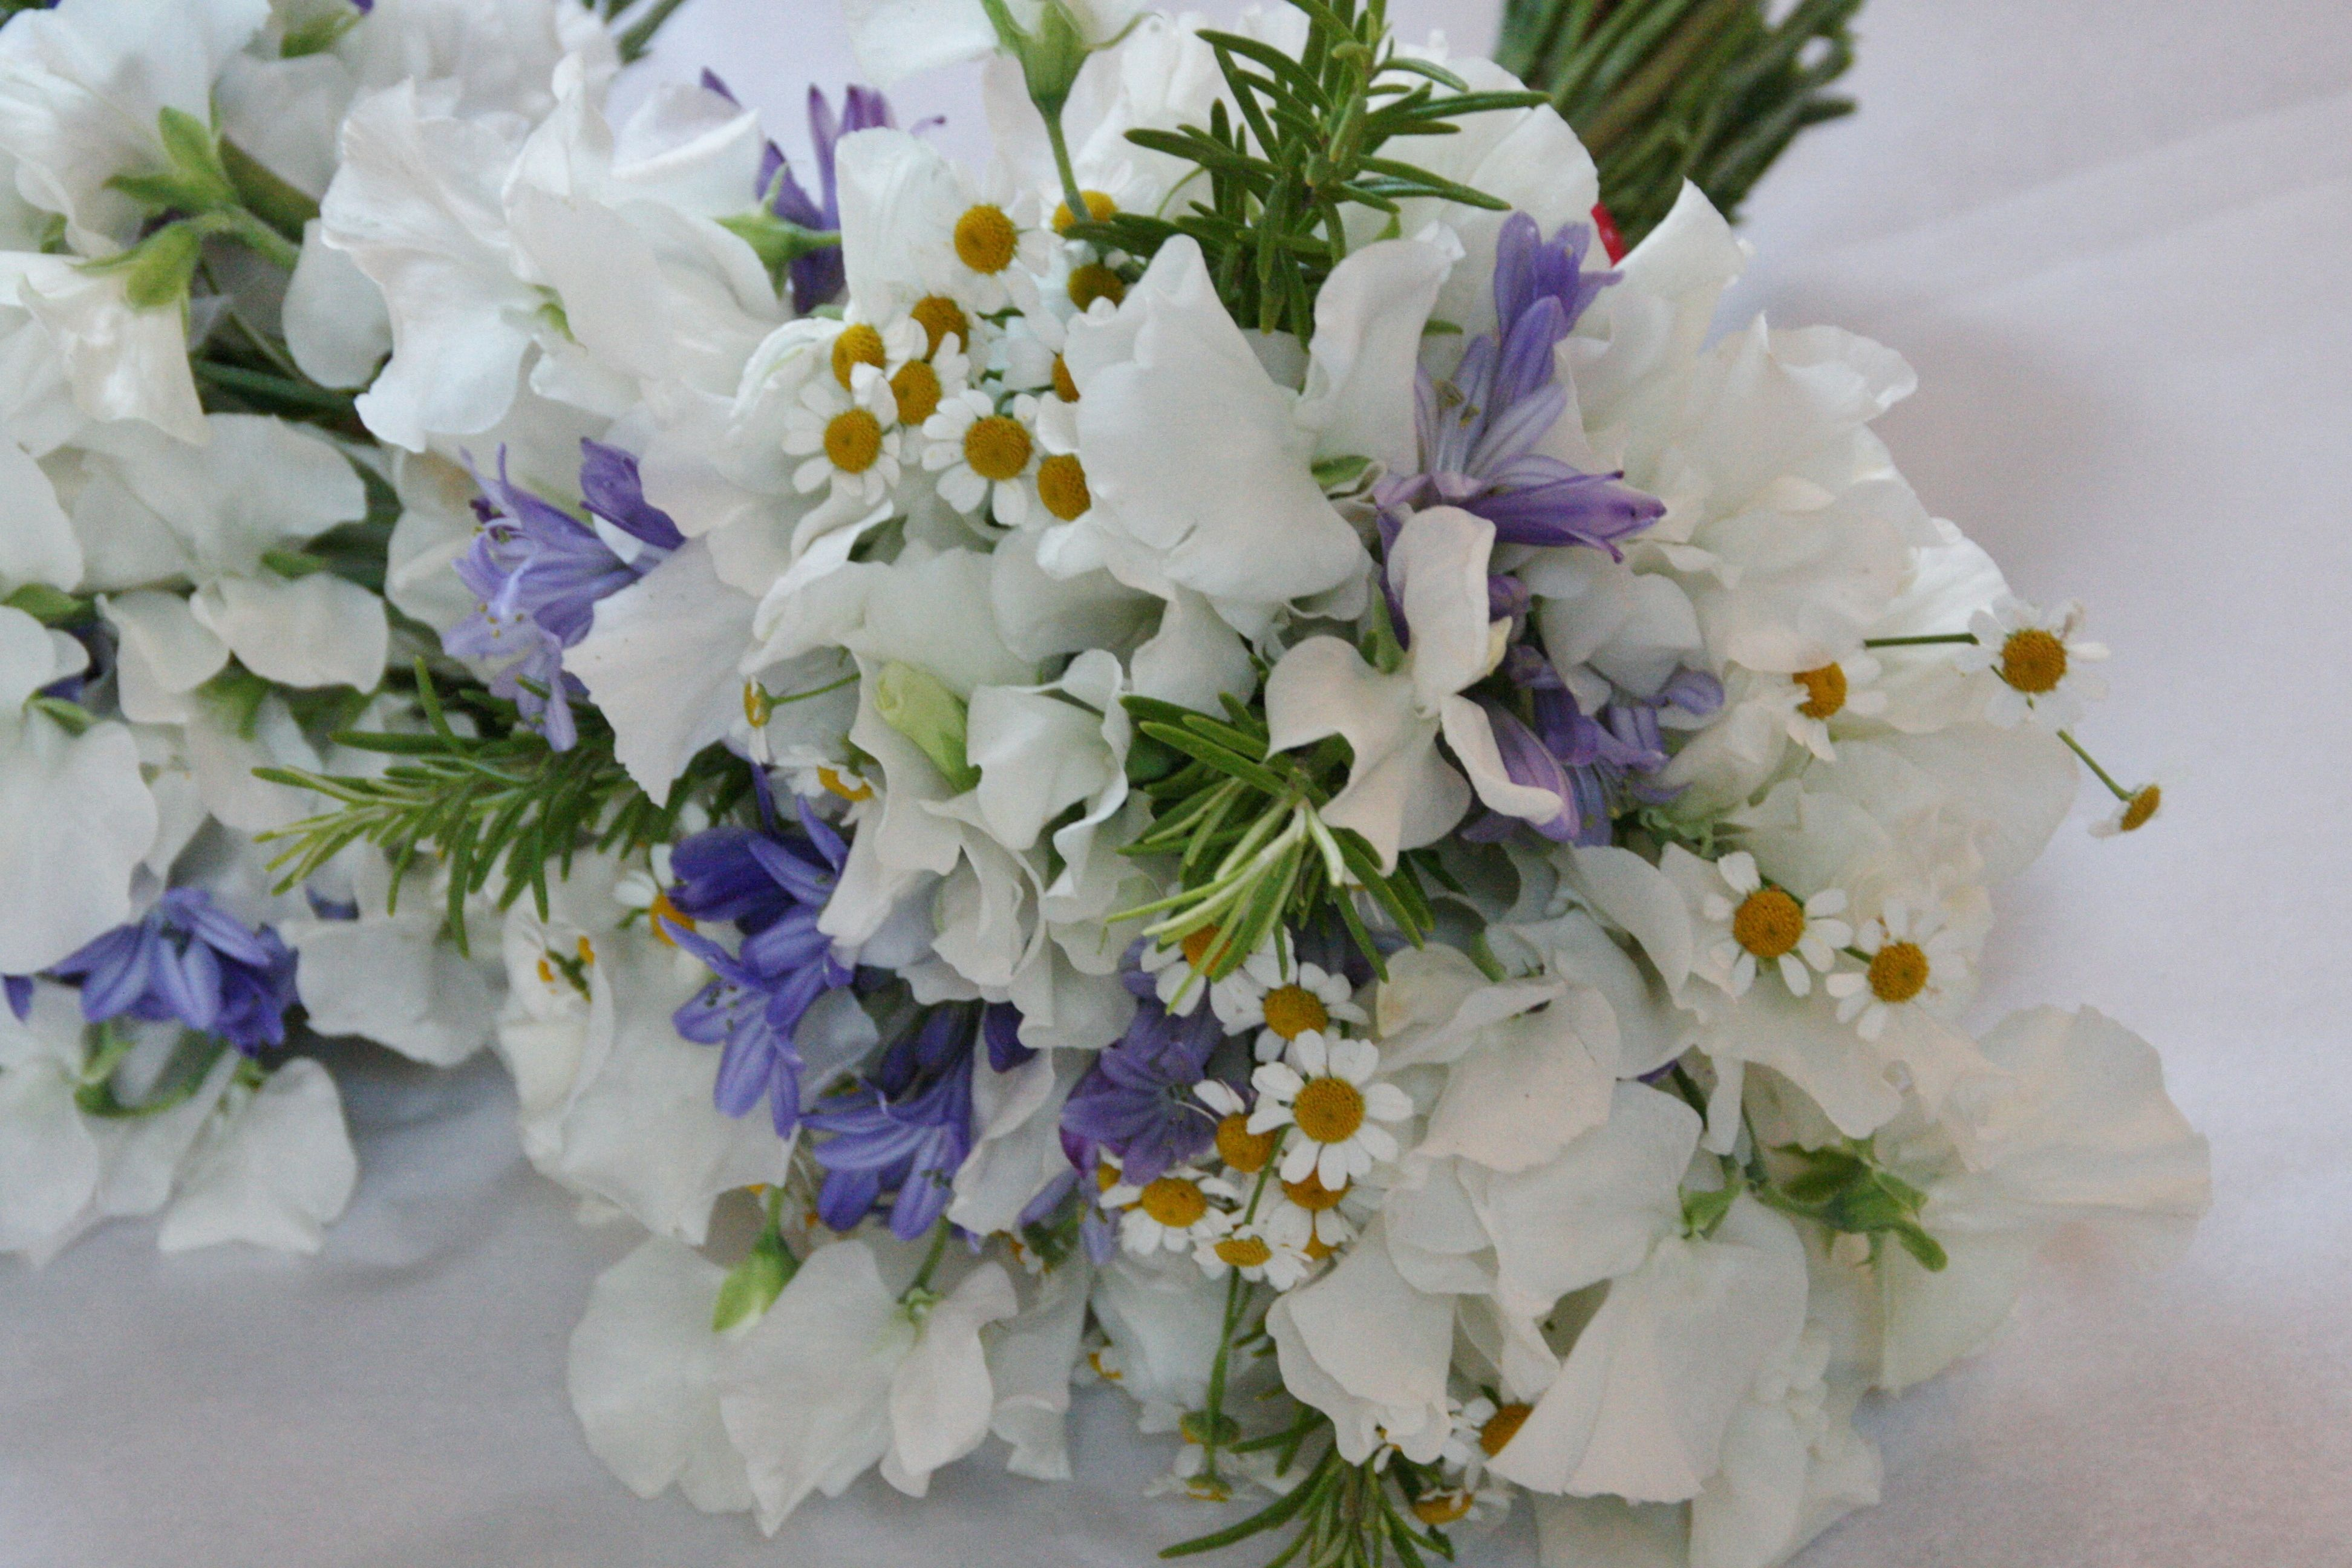 Daisies, White Sweet Pea And Agapanthus In 2019